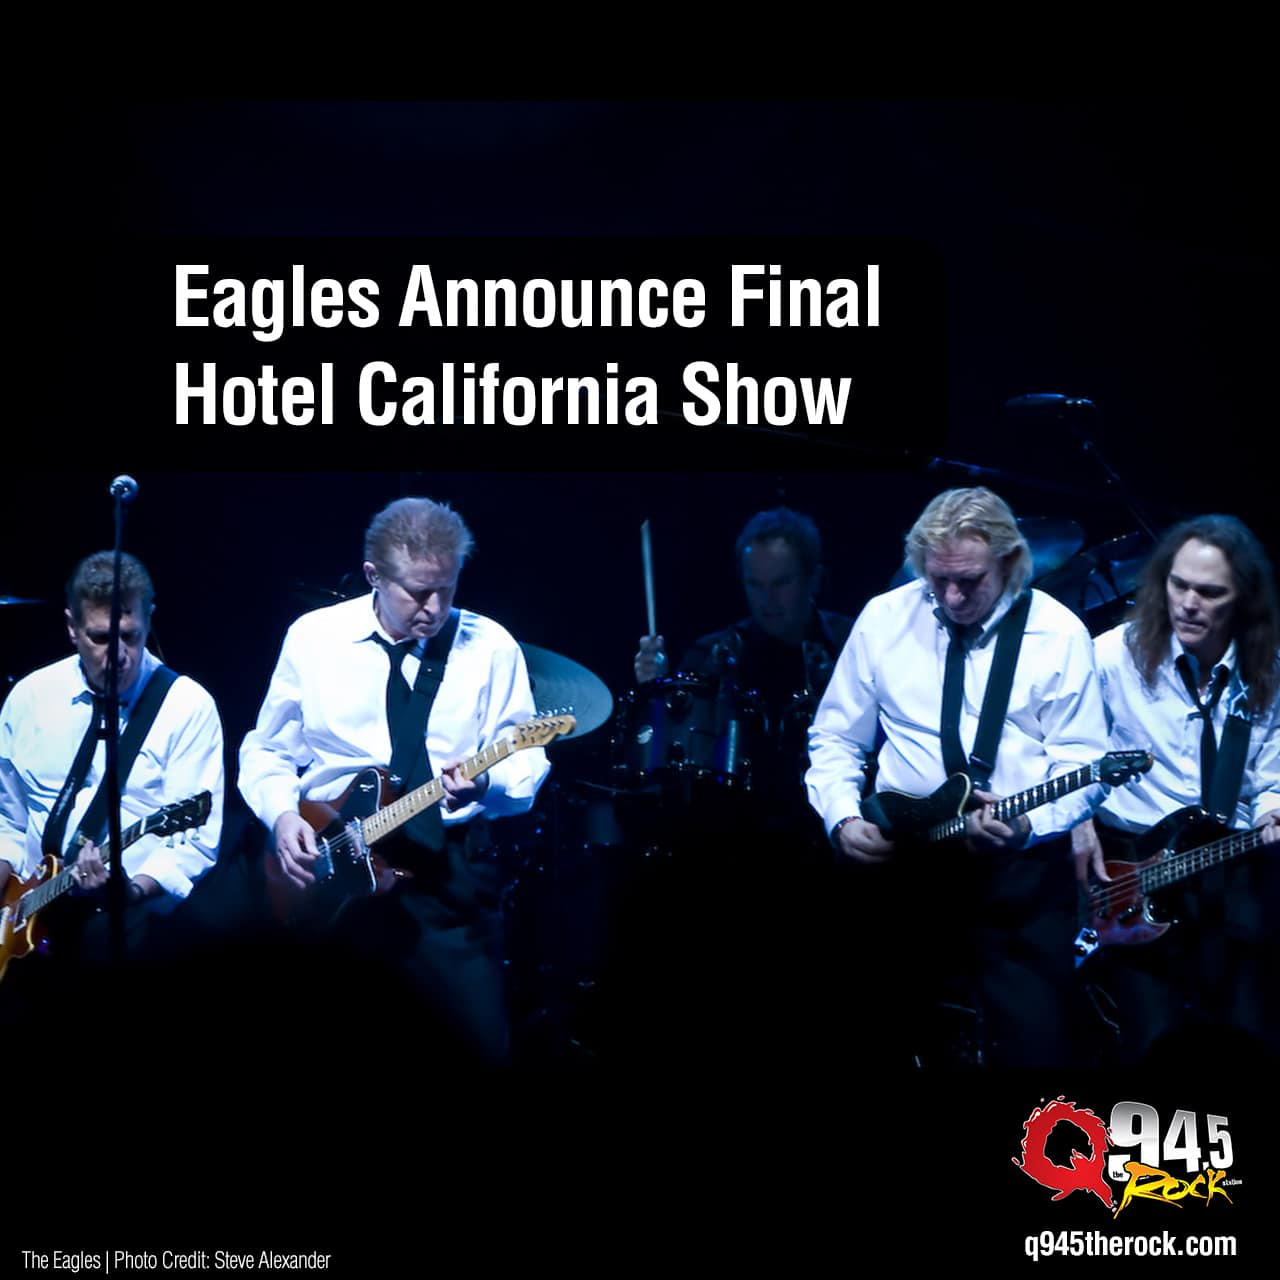 Eagles Announce Final Hotel California Show